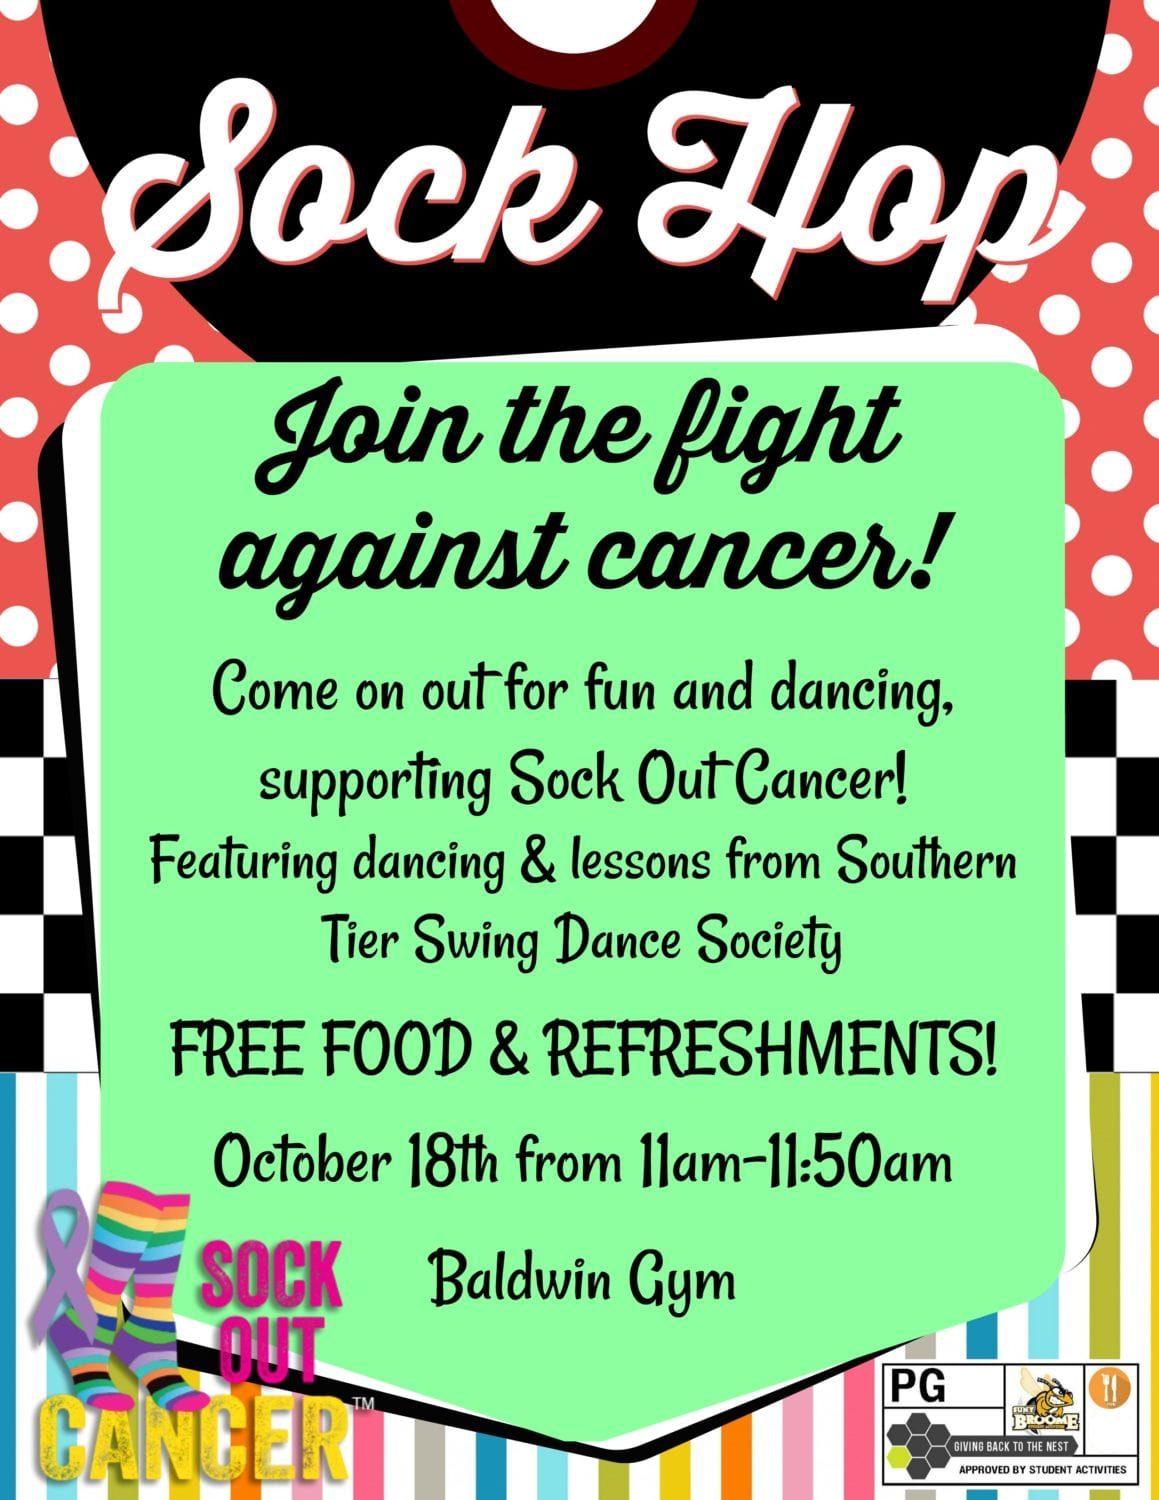 Get your saddle shoes: Sock Hop to fight cancer on Oct. 18